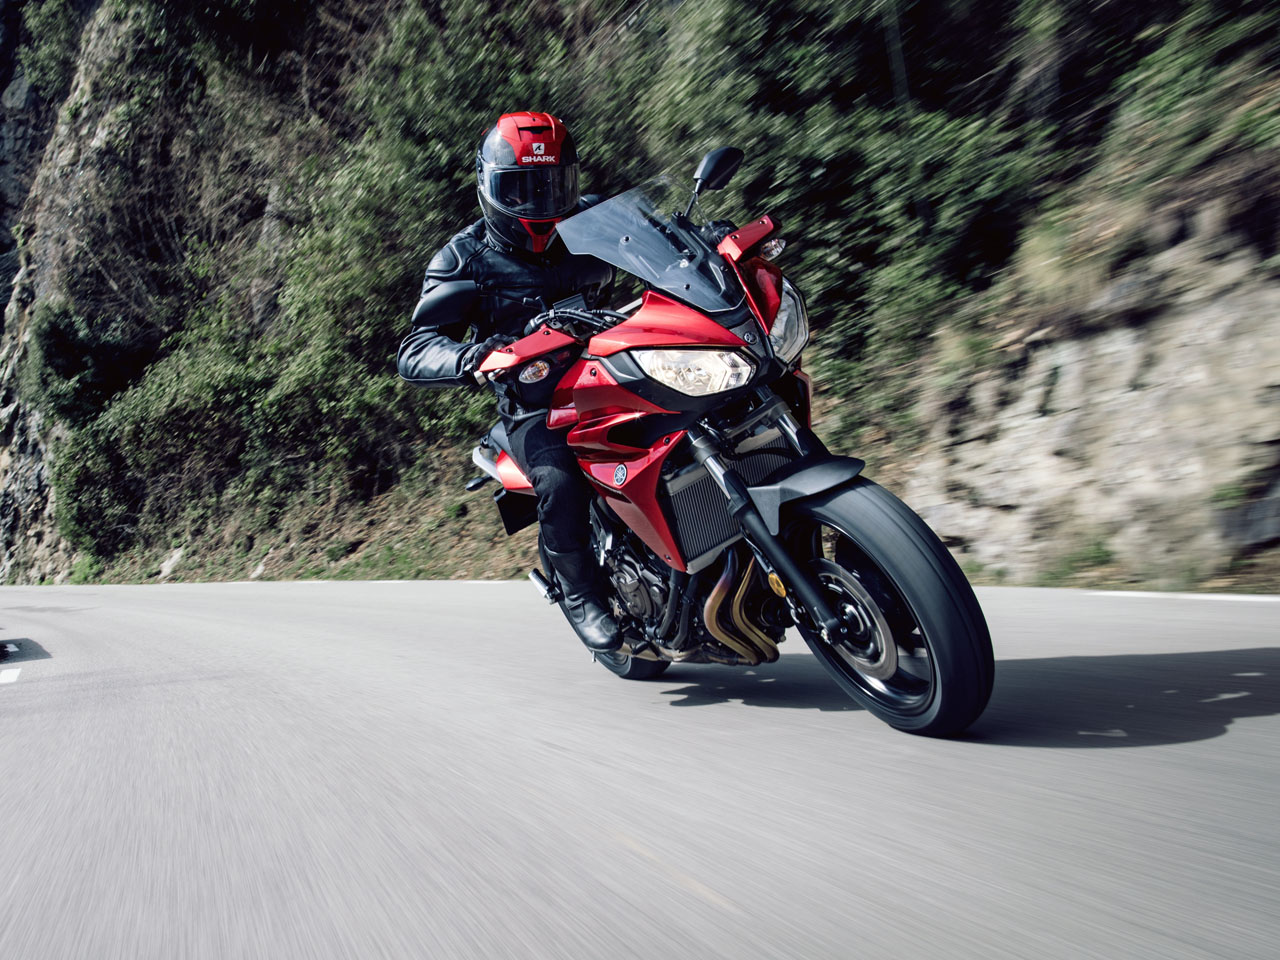 Yamaha Tracer 700 motorcycle riding on the hill road